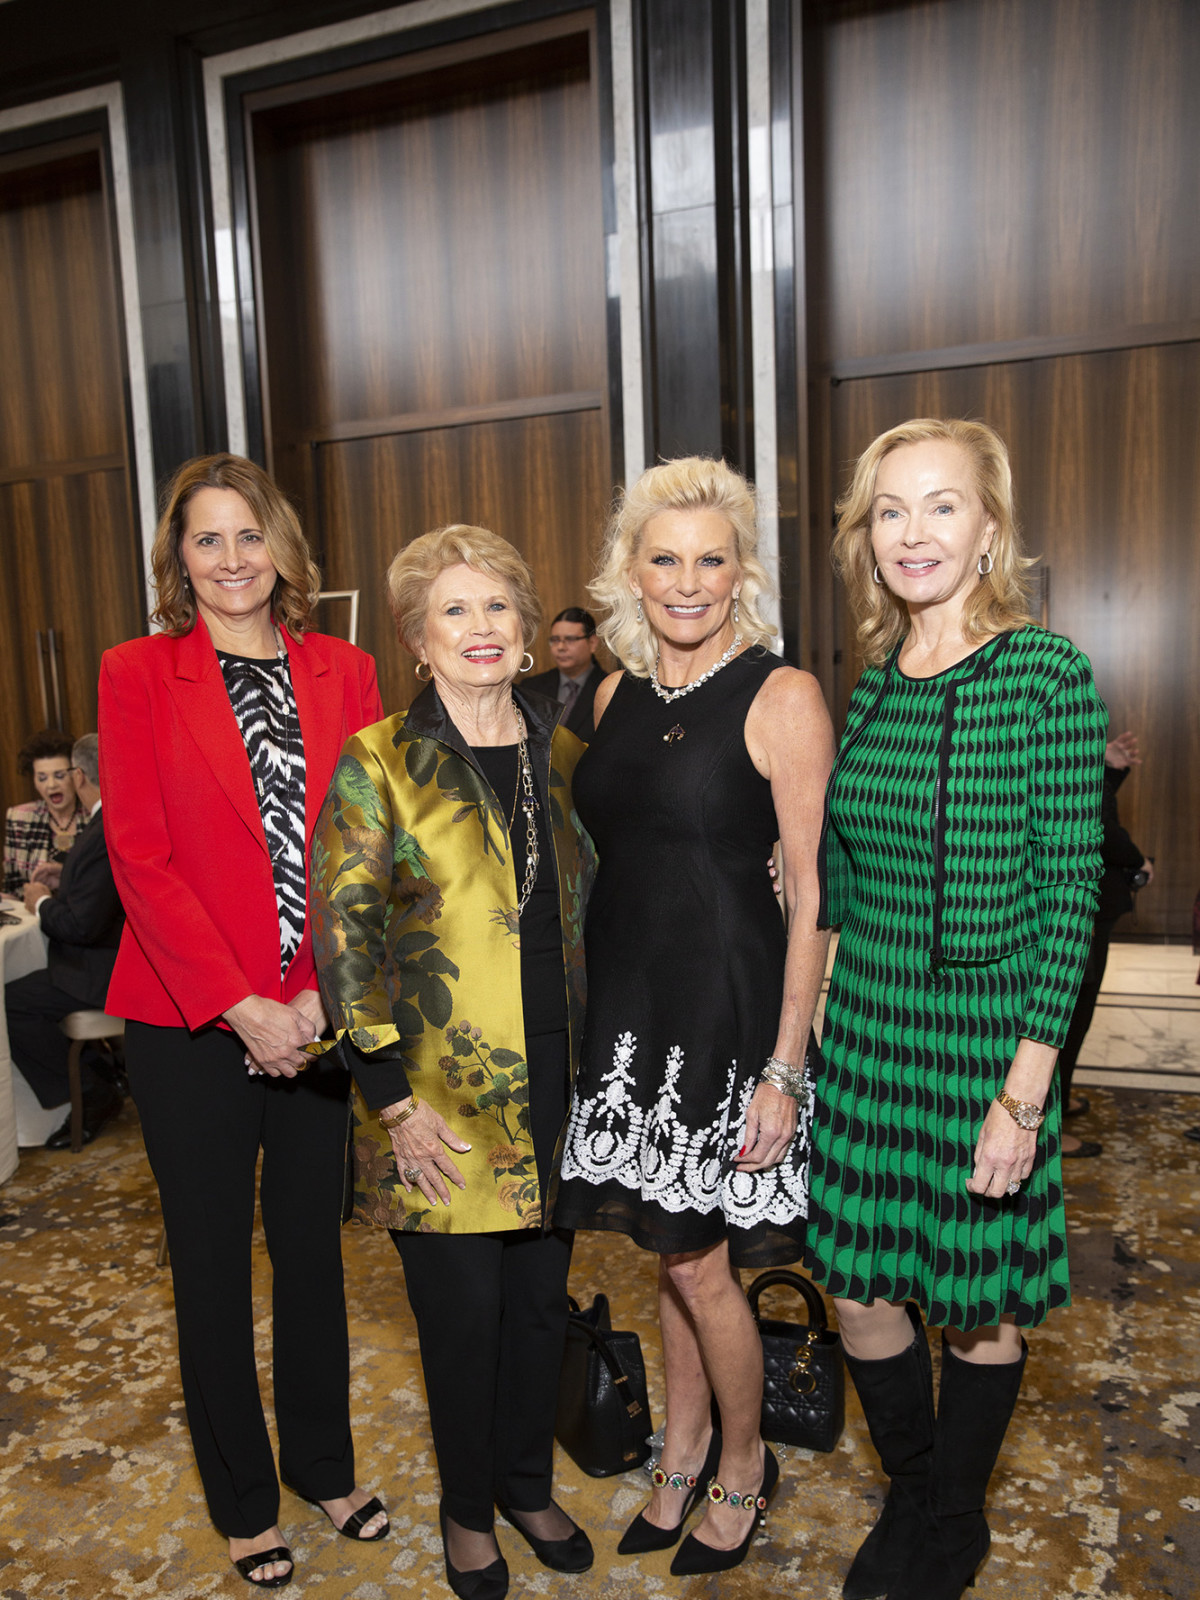 Barbara Bush Power of Literacy Luncheon Julie Andrews 2019 Laurel D'Antoni, Ginger Blanton, Kristen Oesch Stubbs, and Alice Mosing